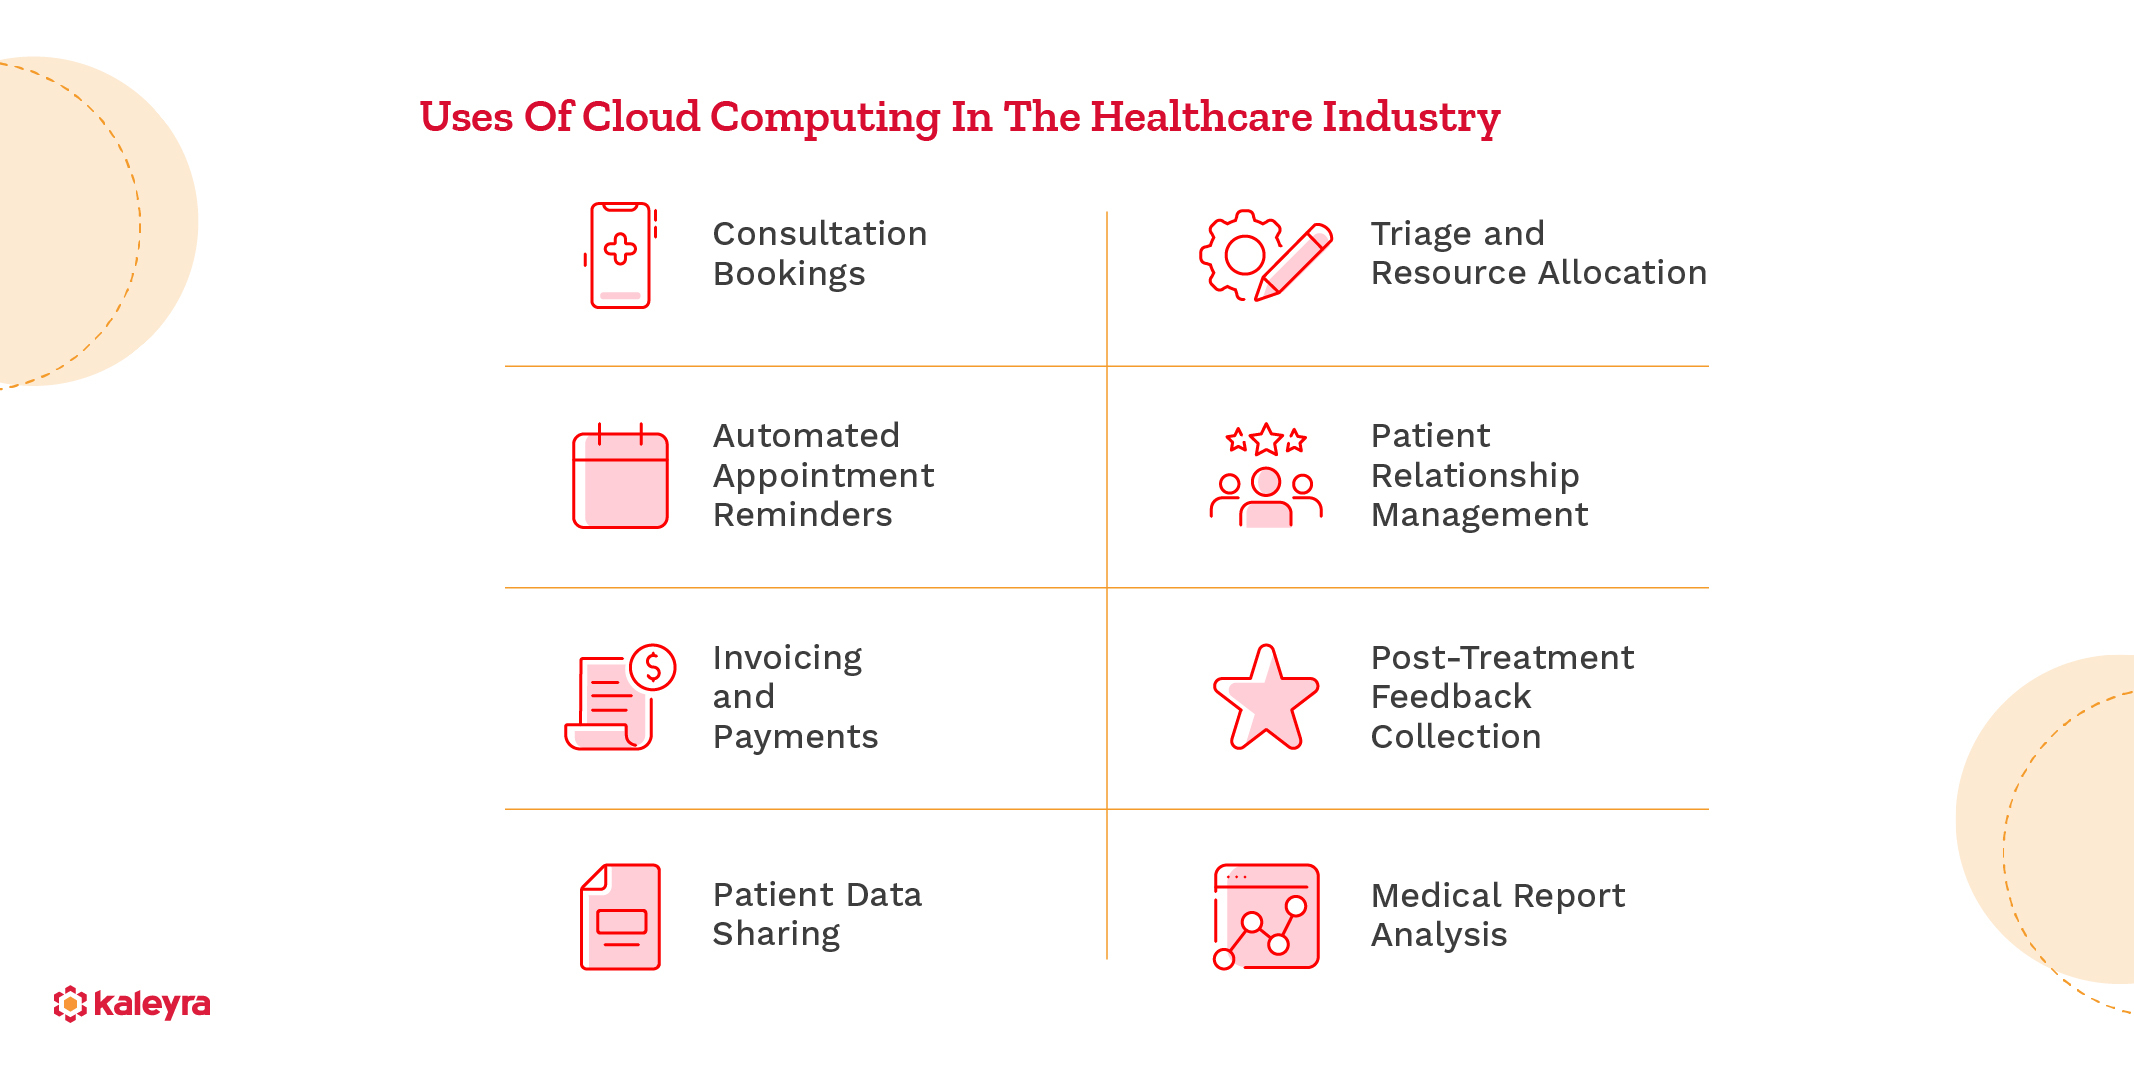 Uses Of Cloud Computing In The Healthcare Industry